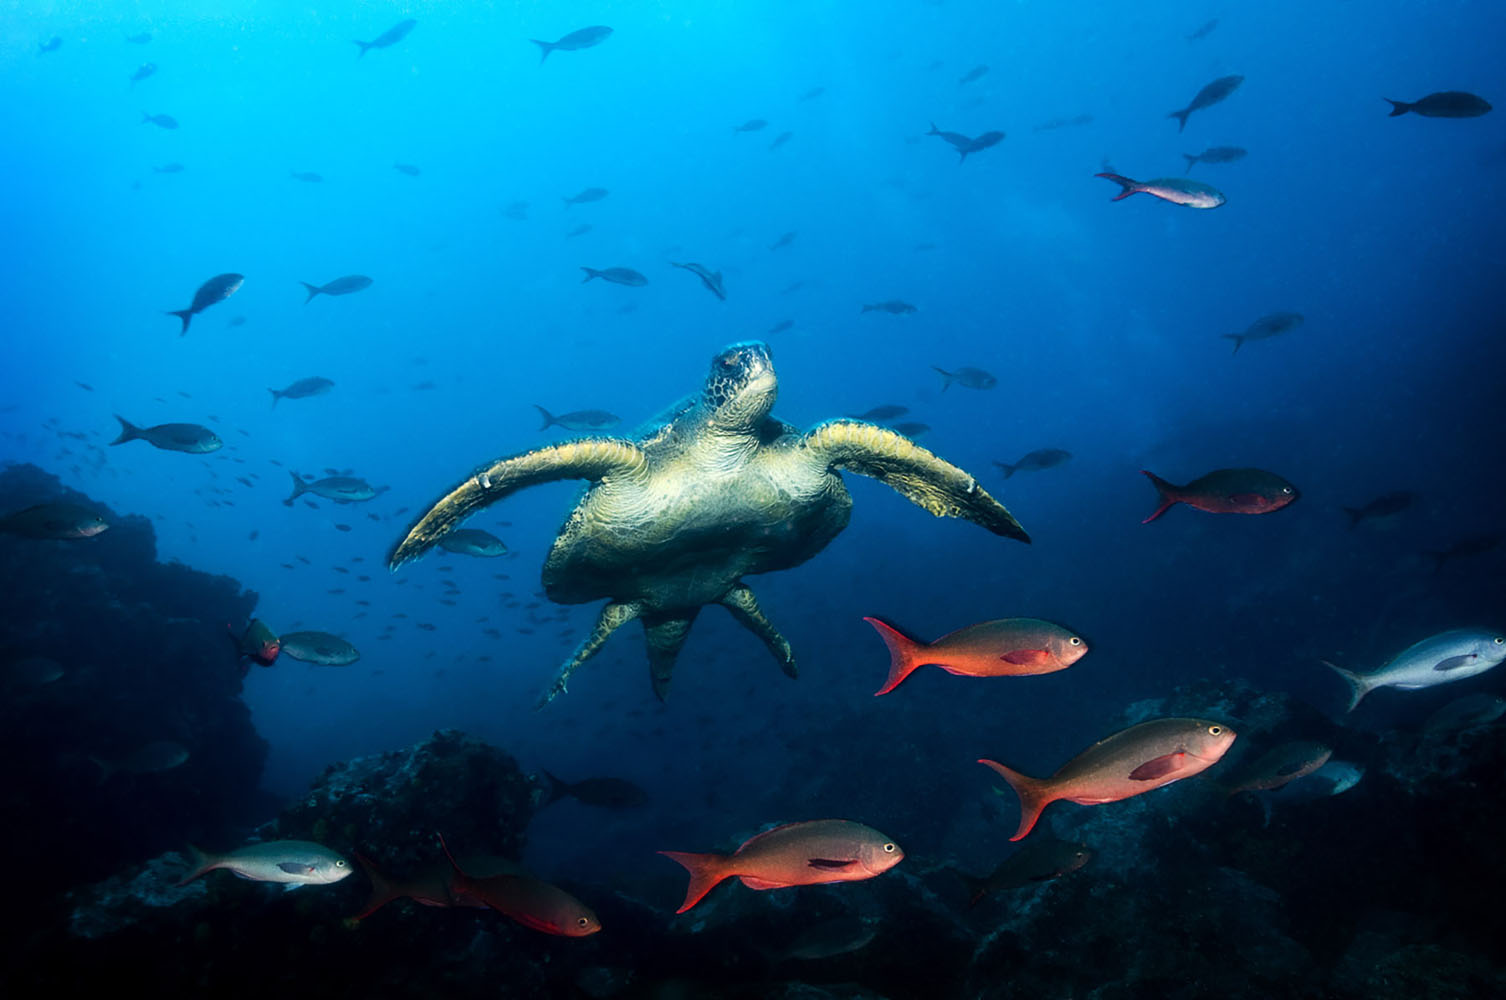 Sea turtles in the Galapagos Islands.